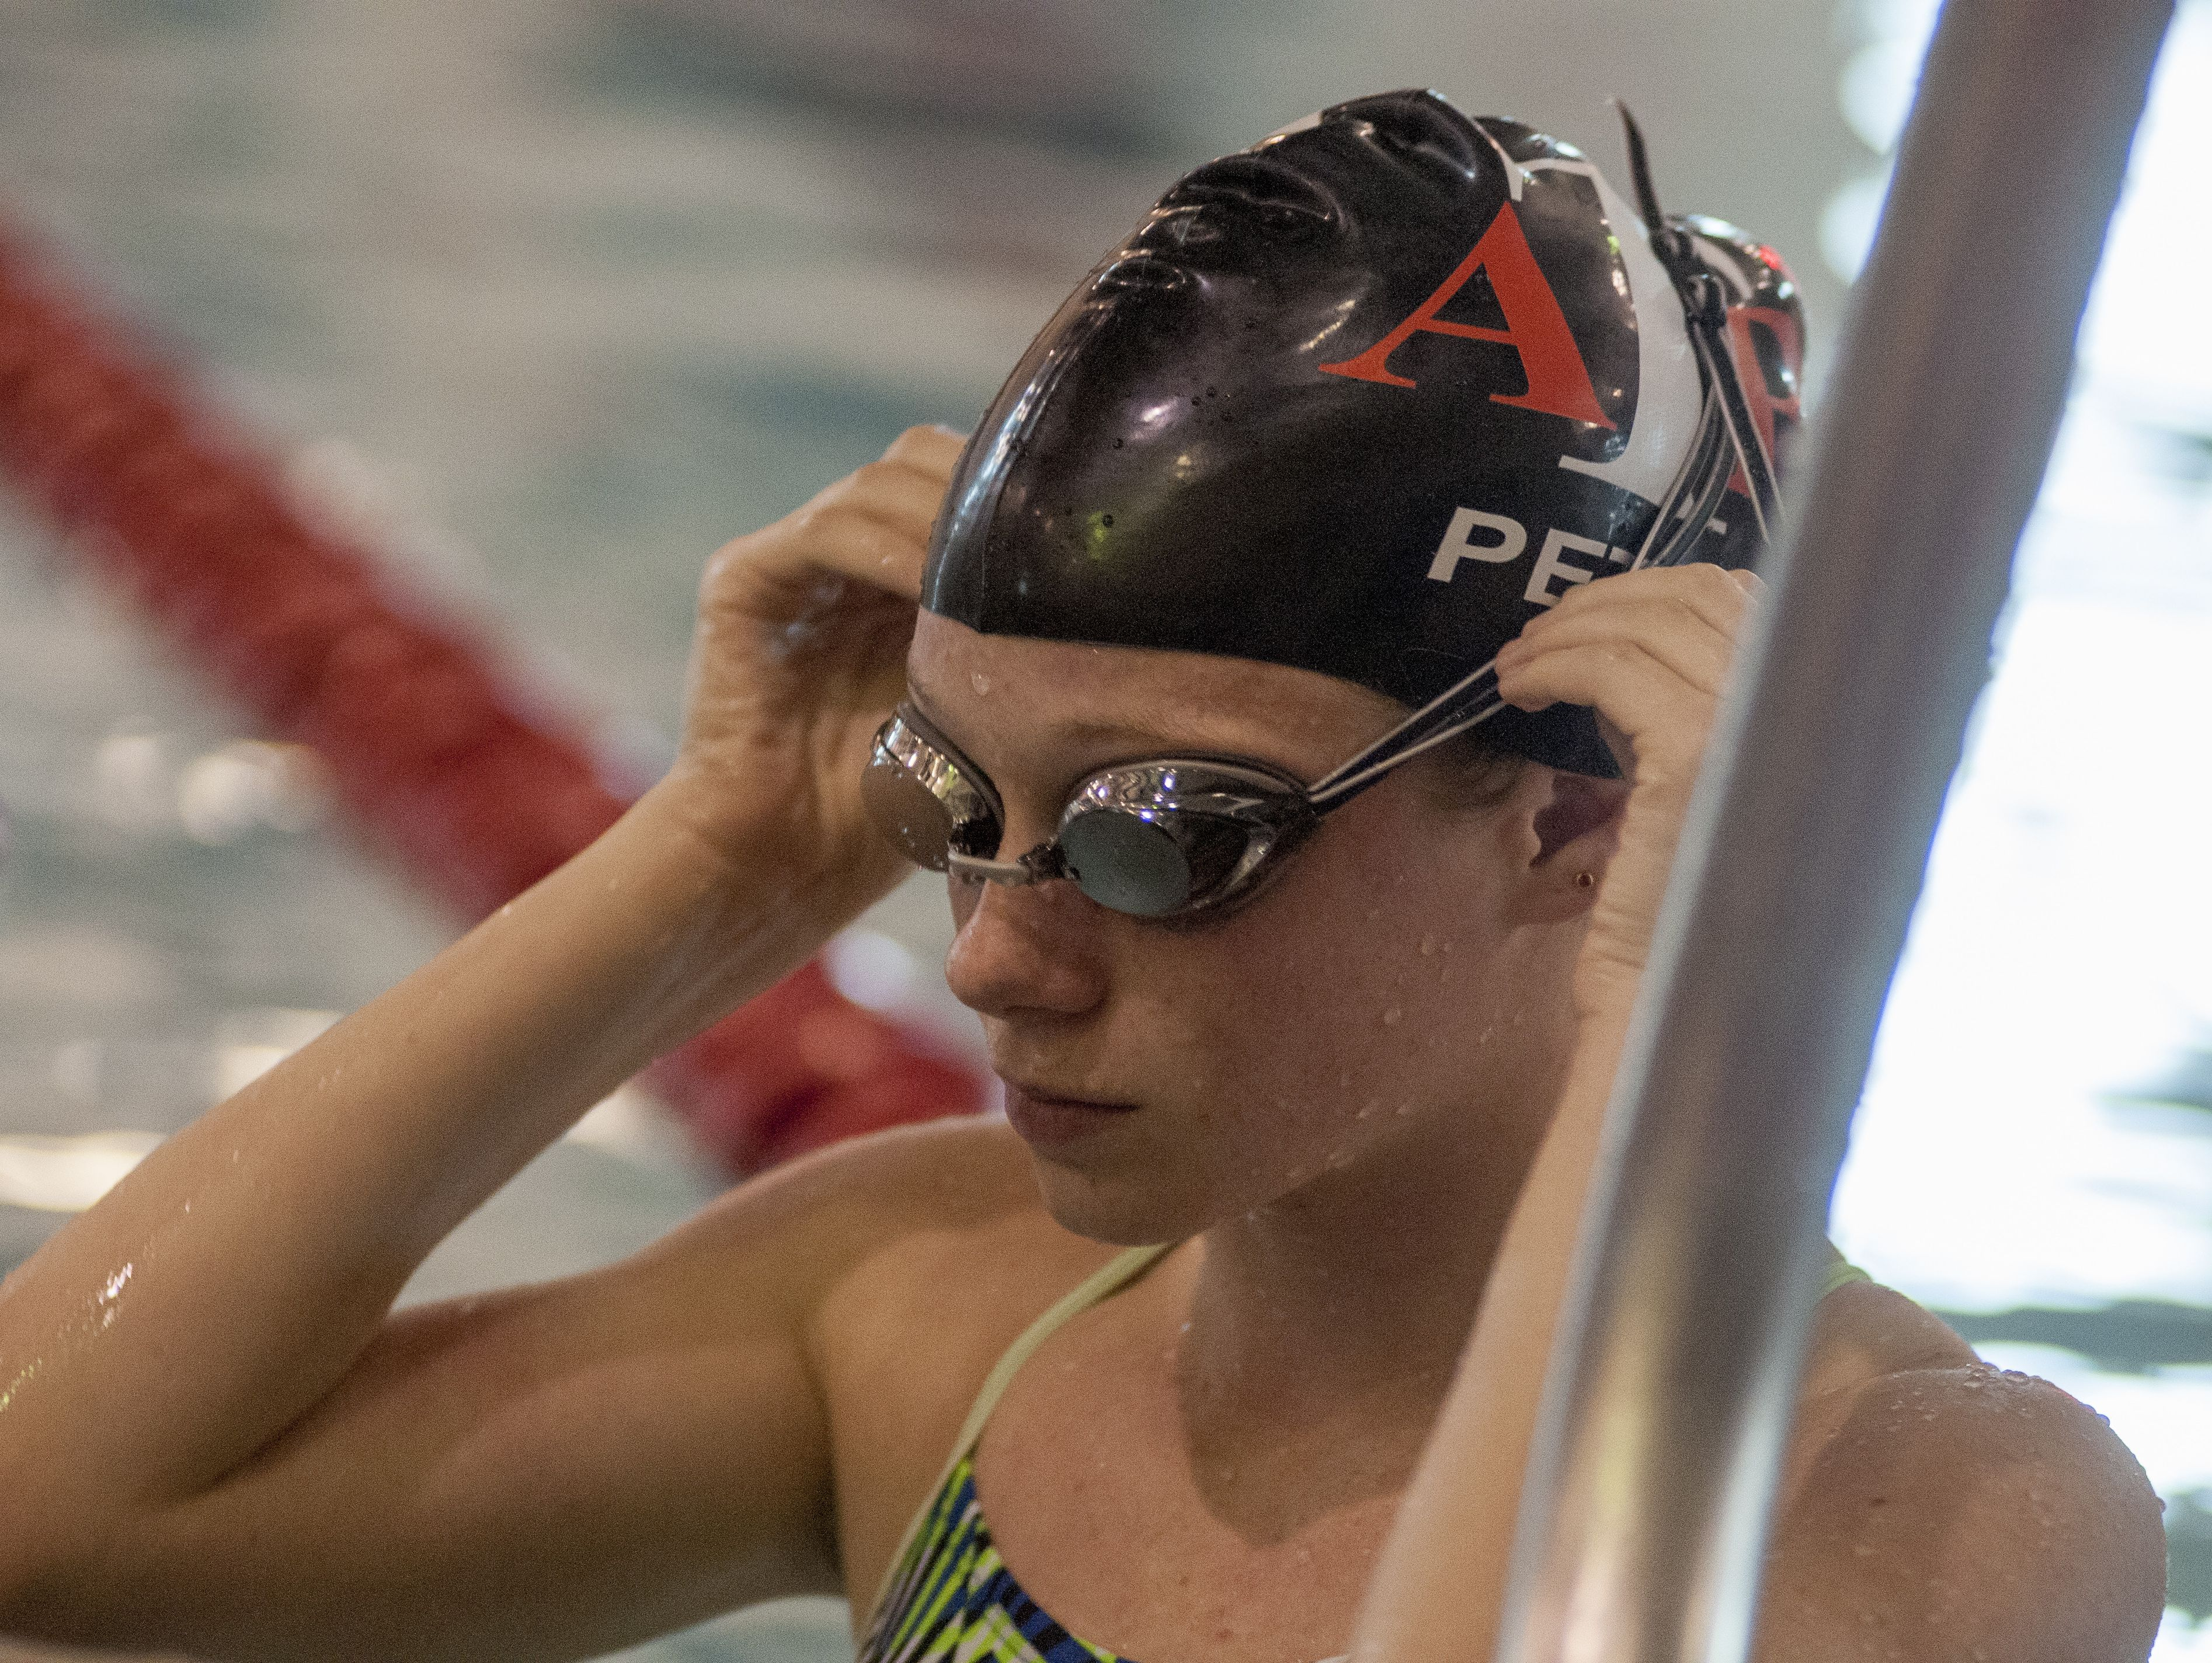 Riley Petit of Algonac adjusts her goggles Monday, Oct. 3, during swim practice at the Anchor Bay Aquatic Center.